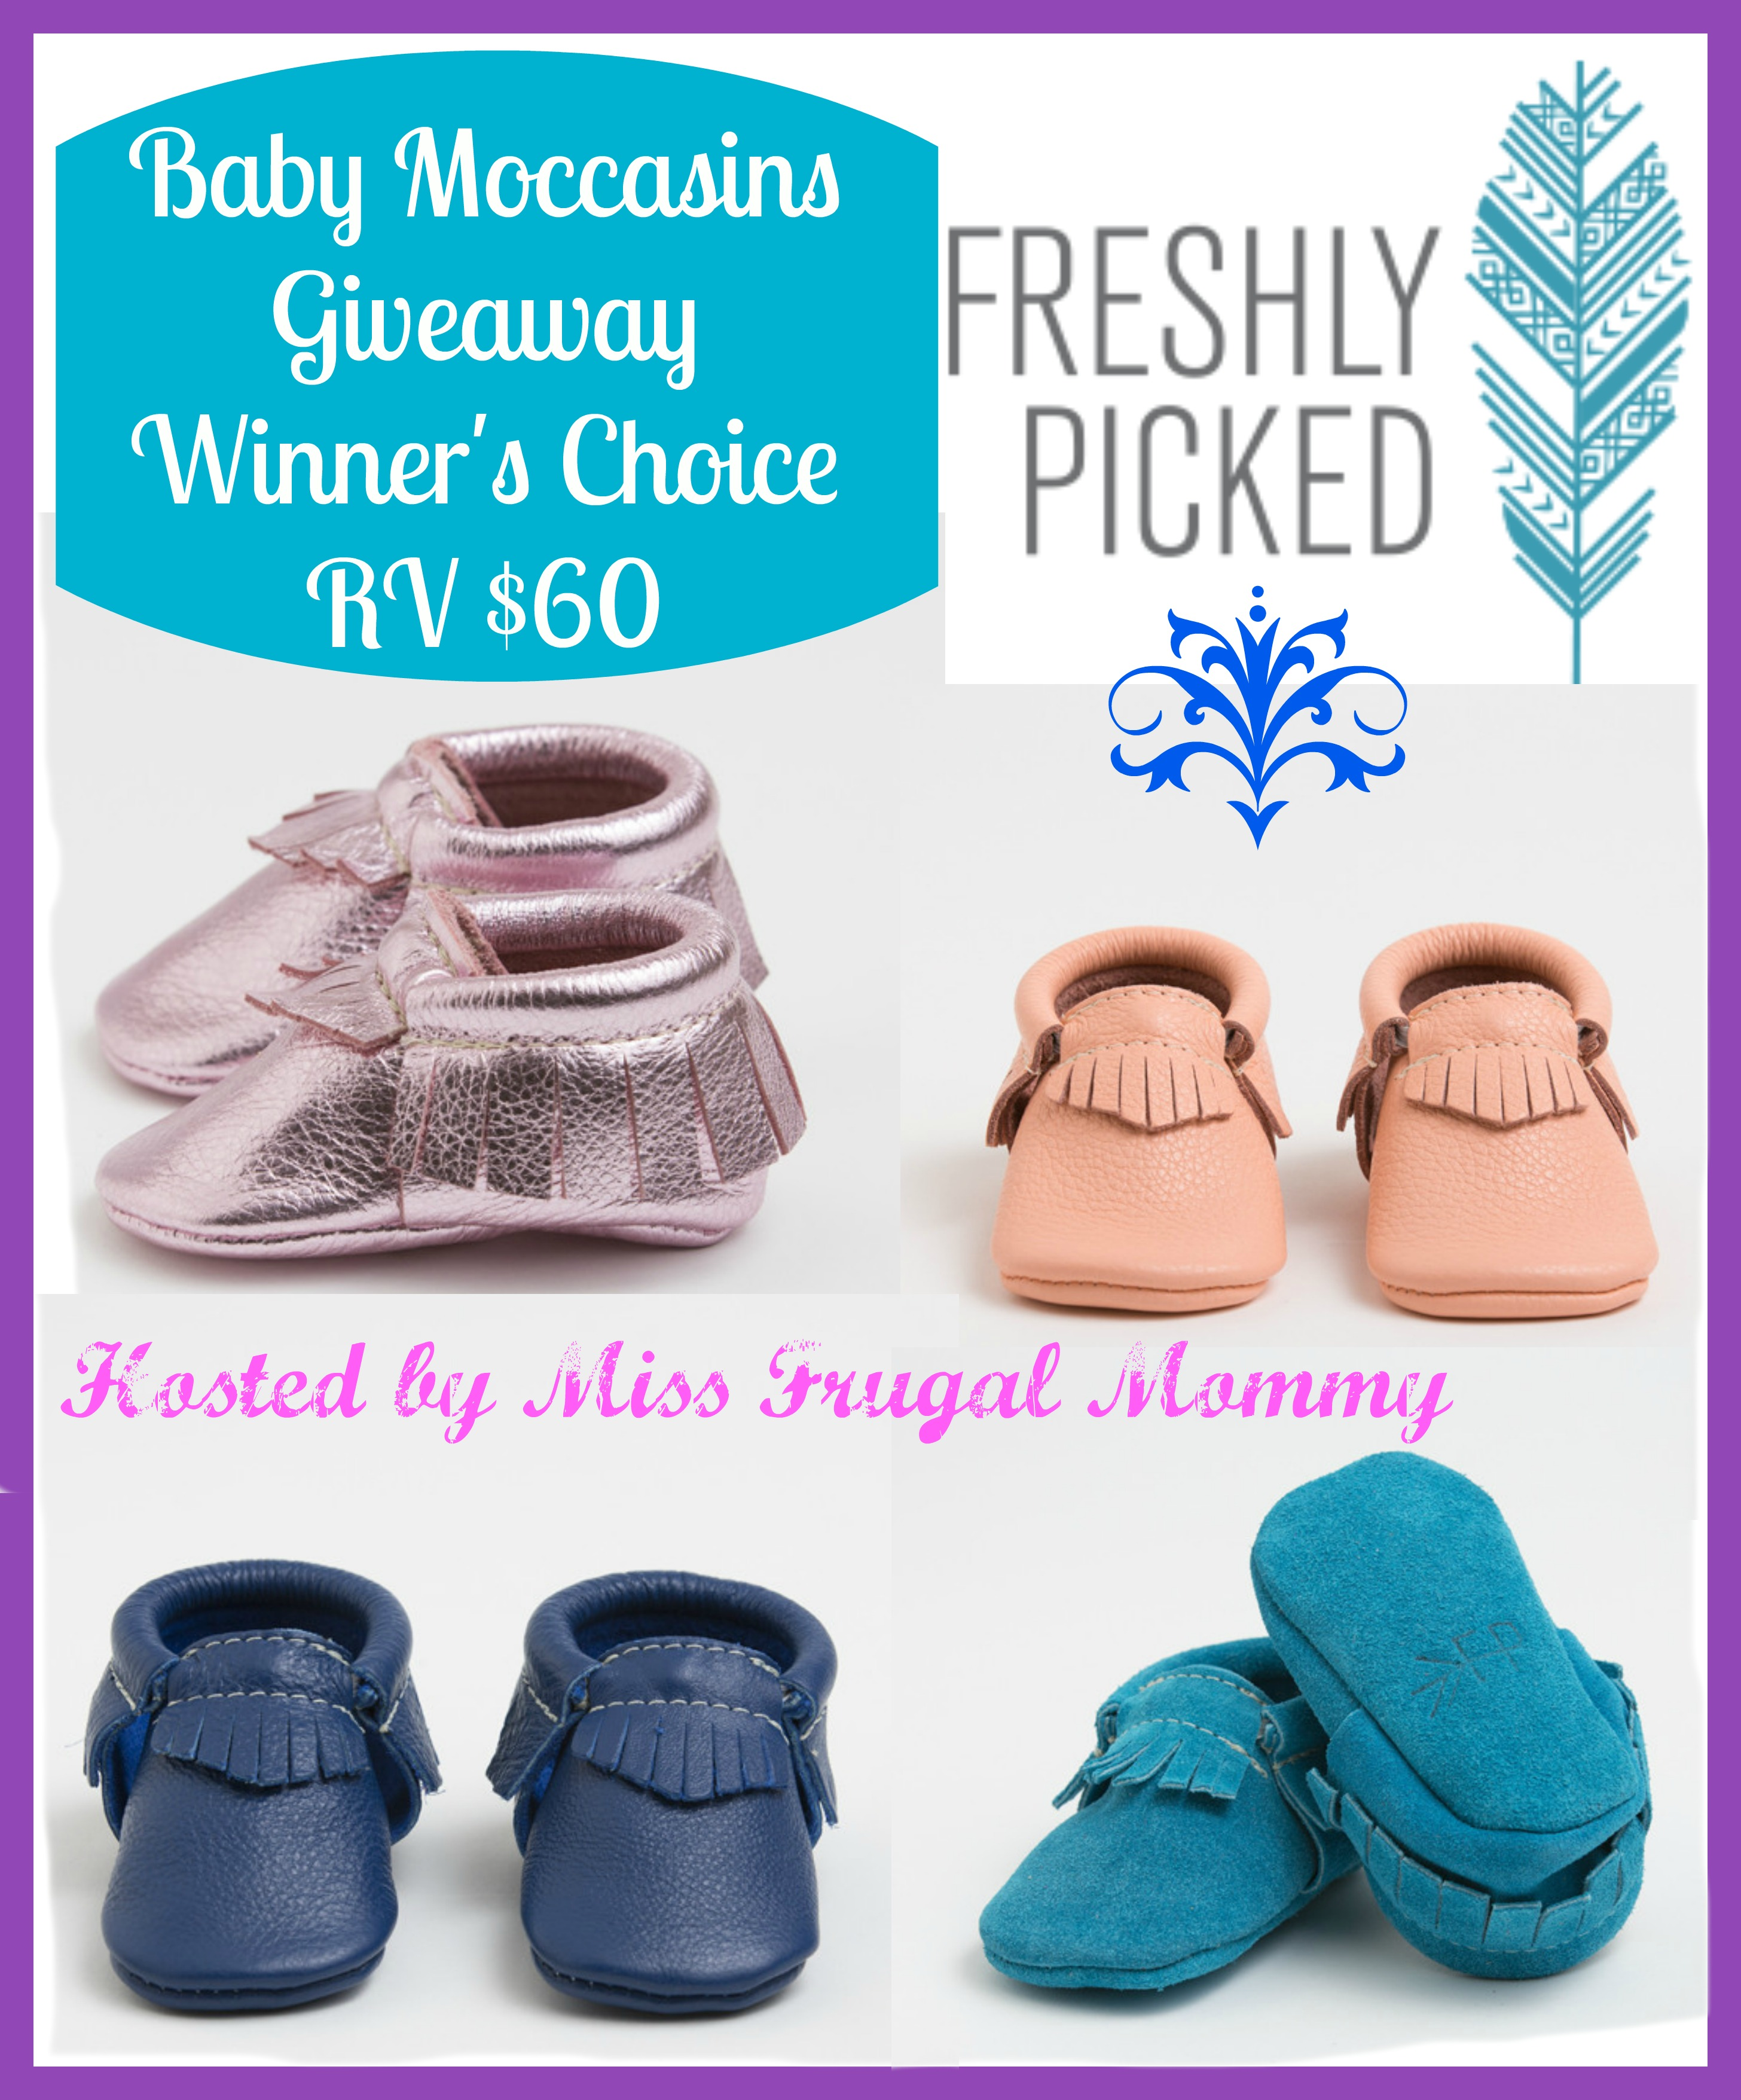 Freshly Picked Baby Moccasins Giveaway: Winner's Choice